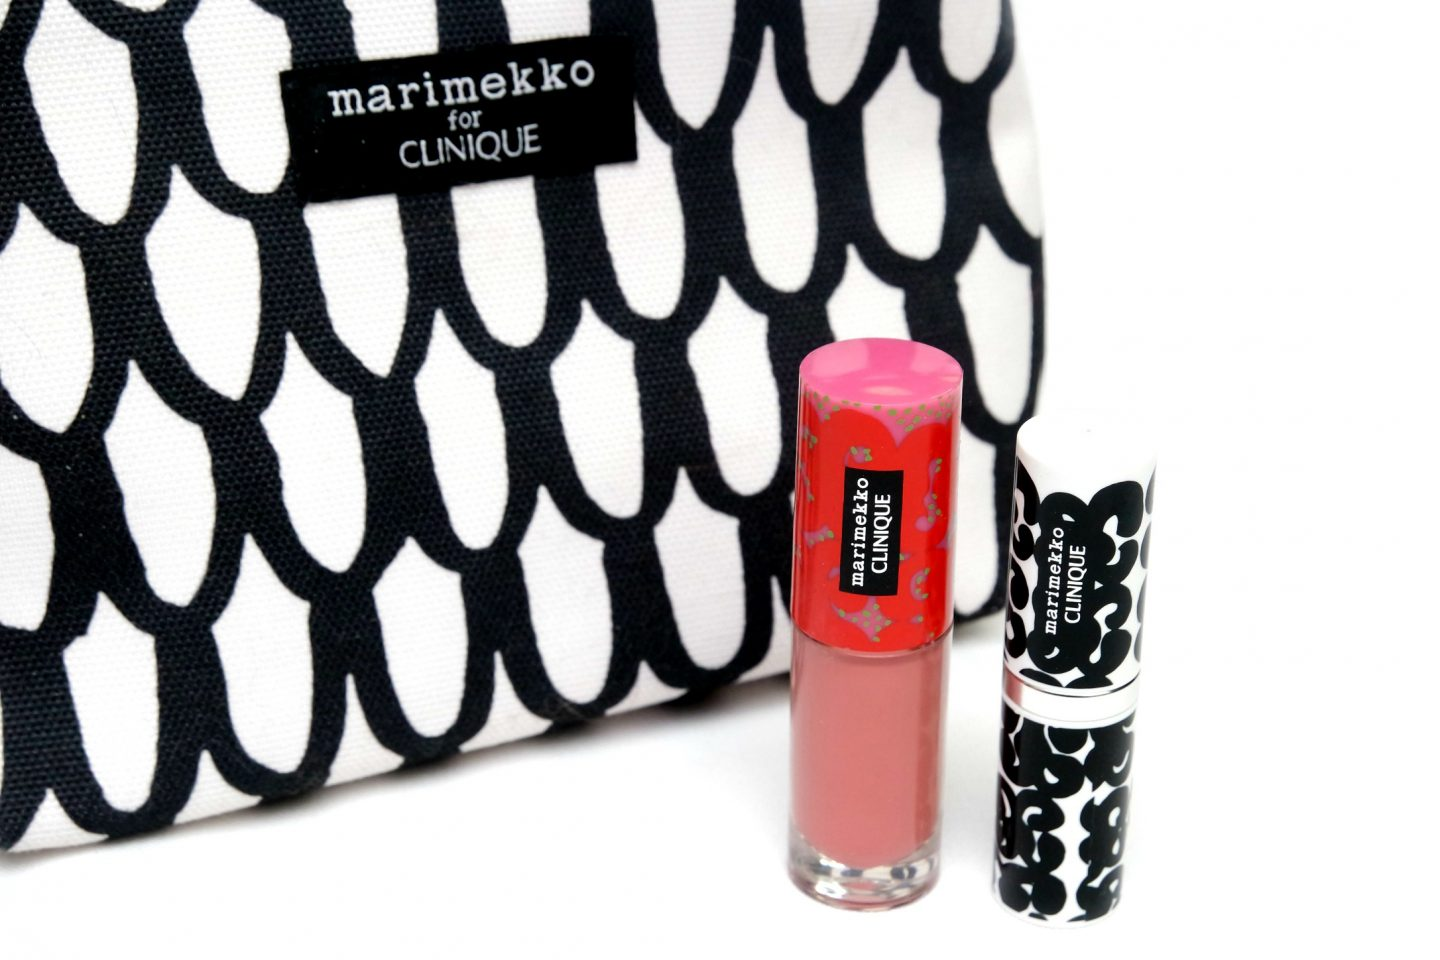 Marimekko for Clinique Limited Edition Collection Review